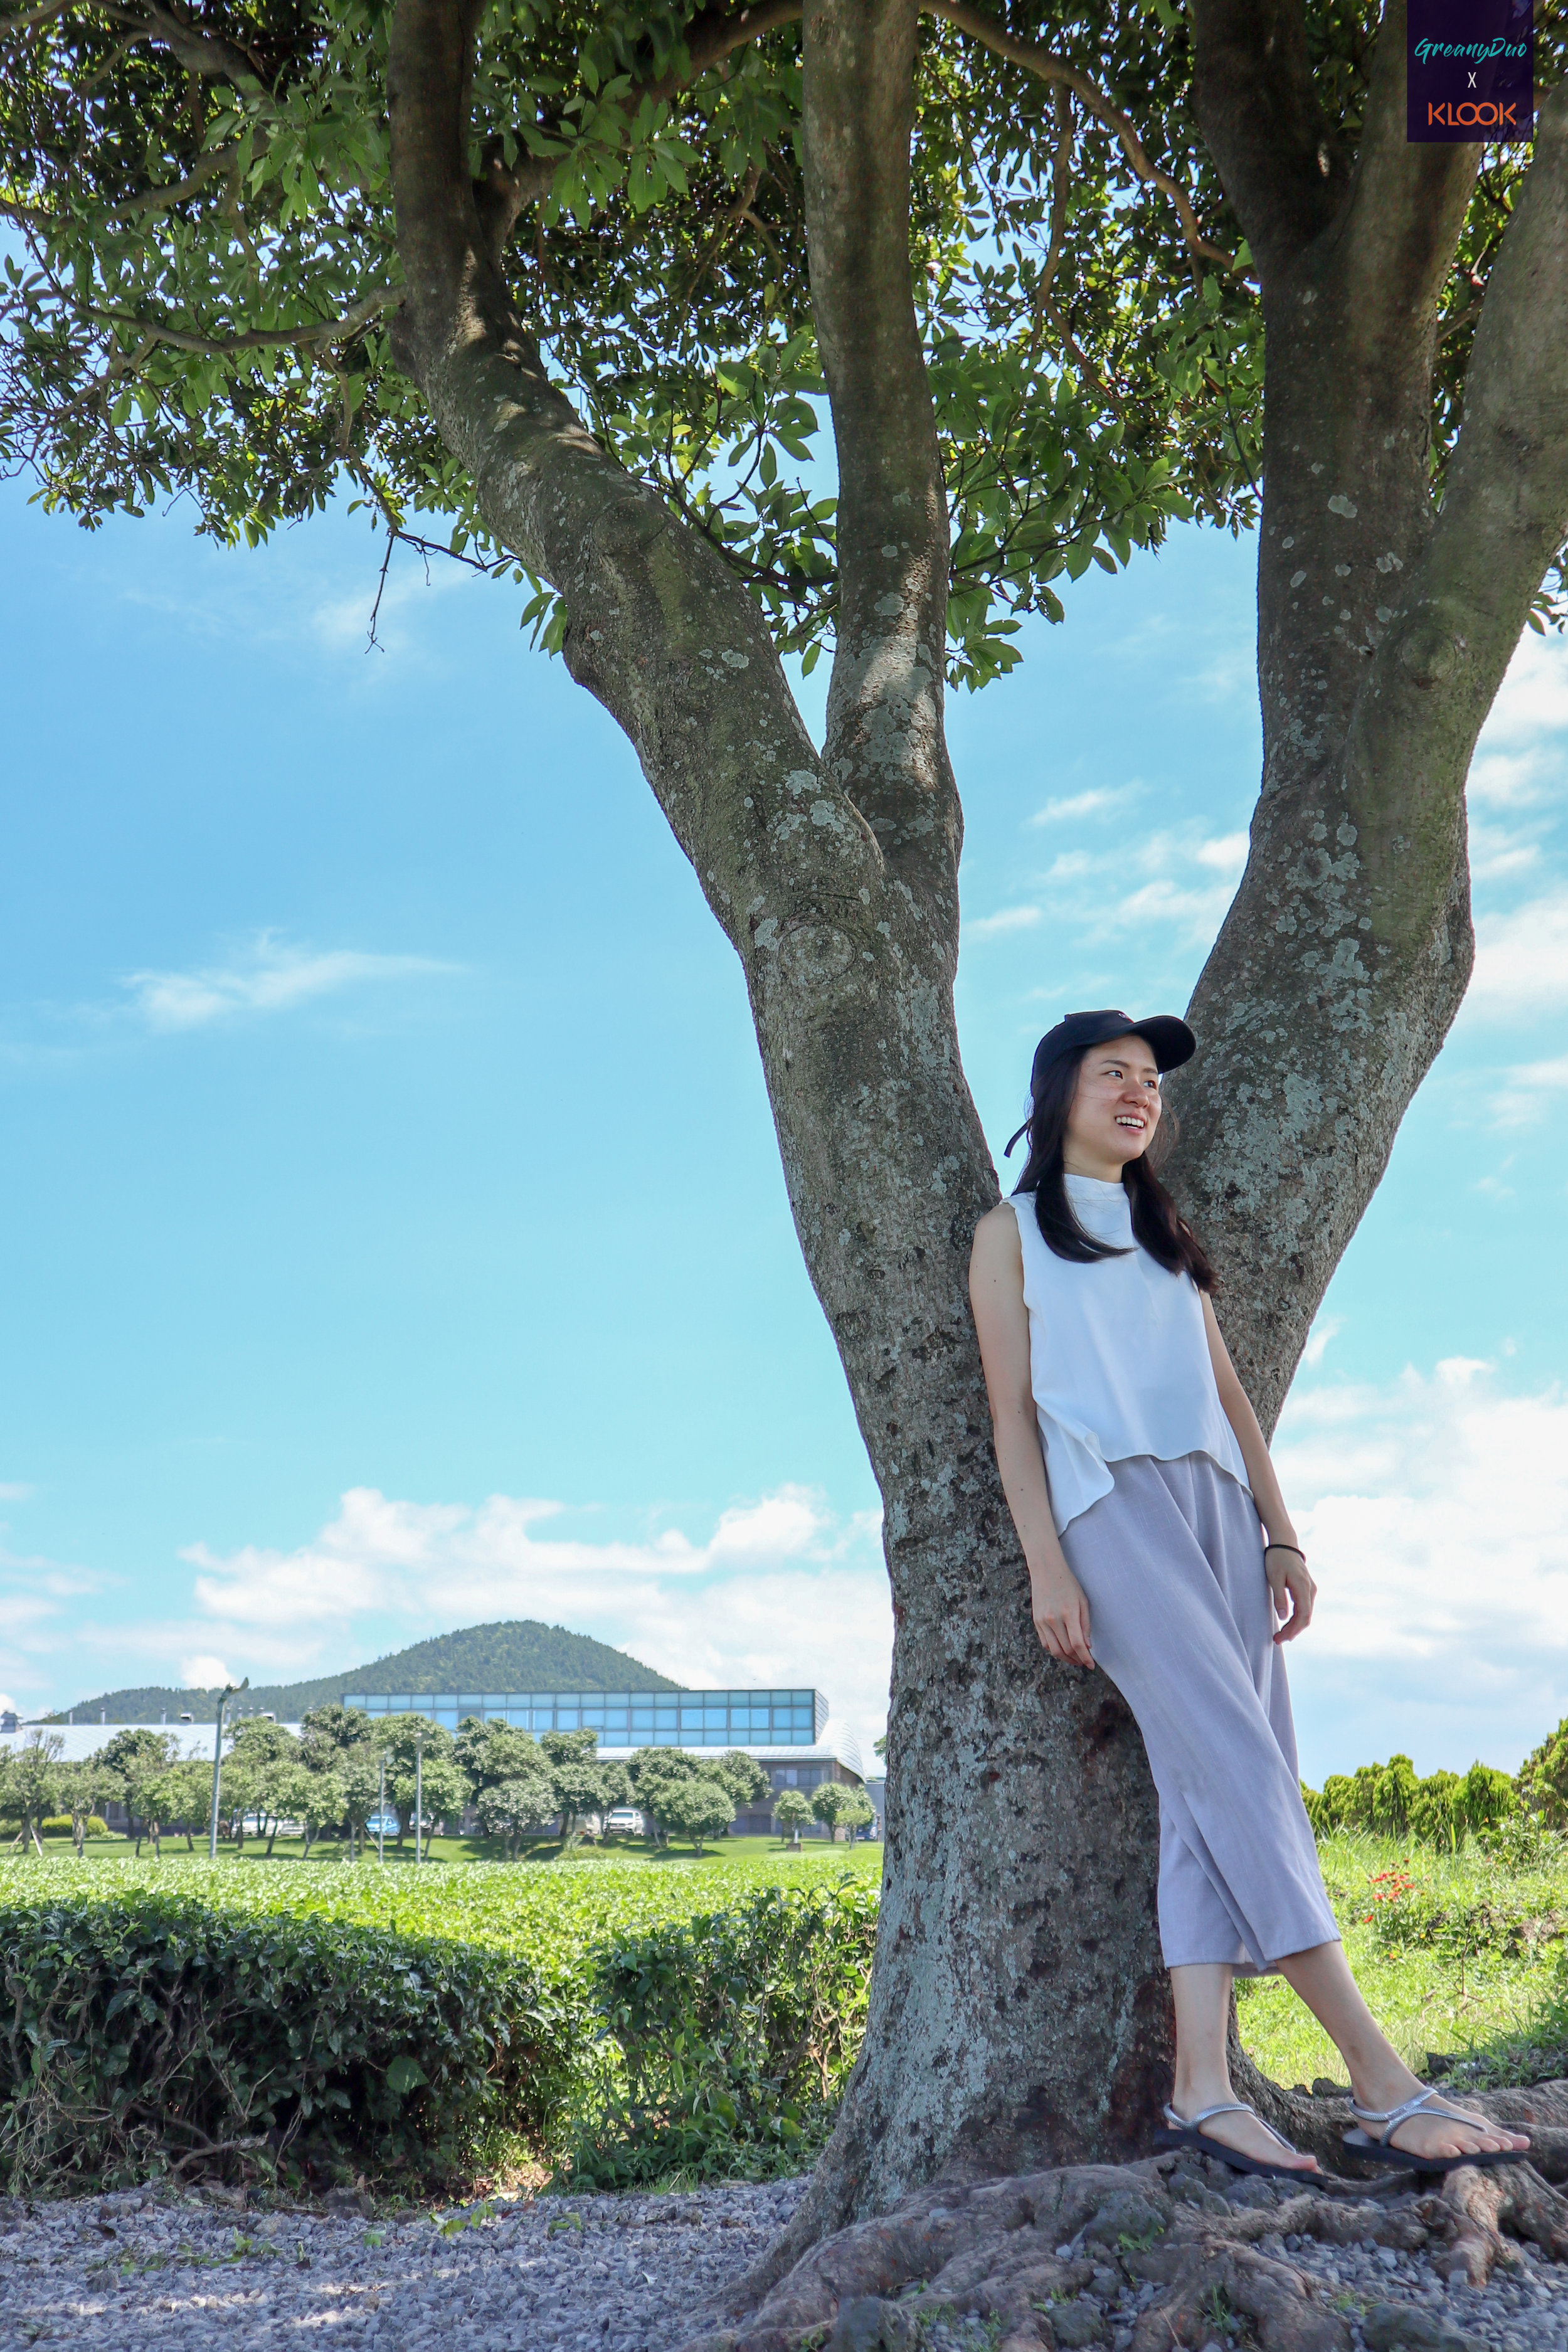 jenny taking photo with the big tree in the middle of ไร่ชาเขียว O'Sulloc เกาะเชจู